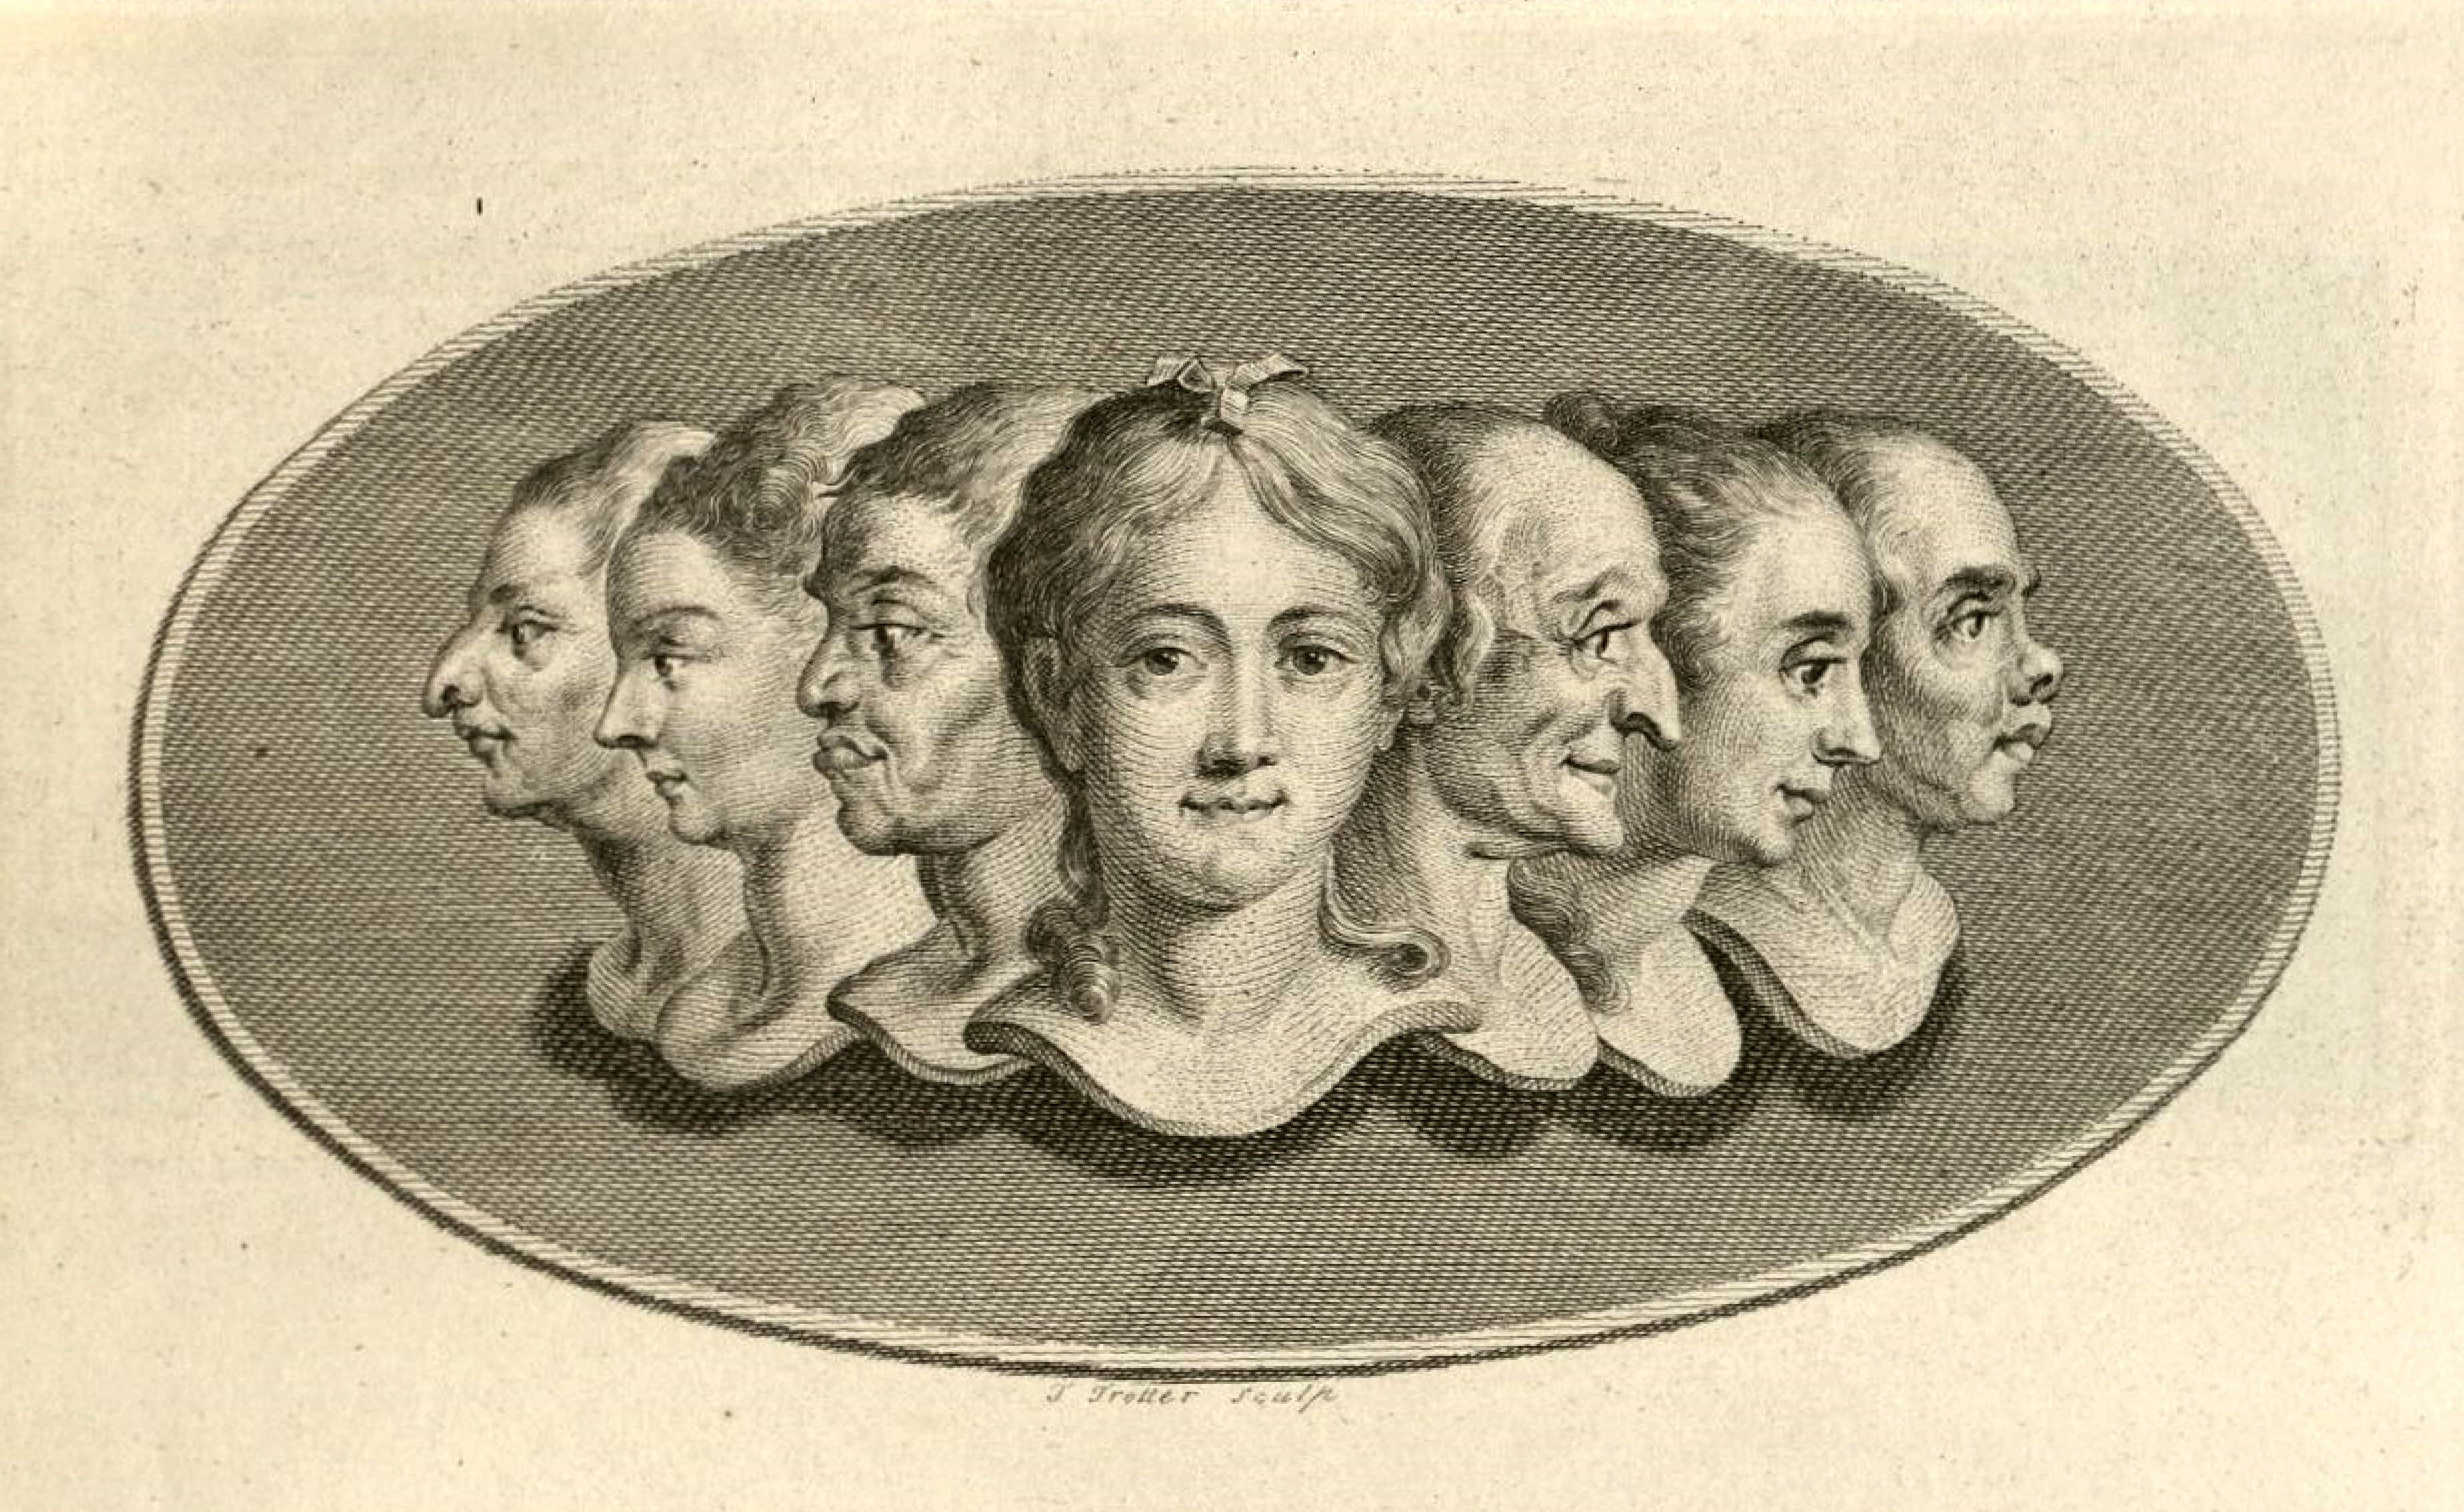 Image from book showing women's faces.